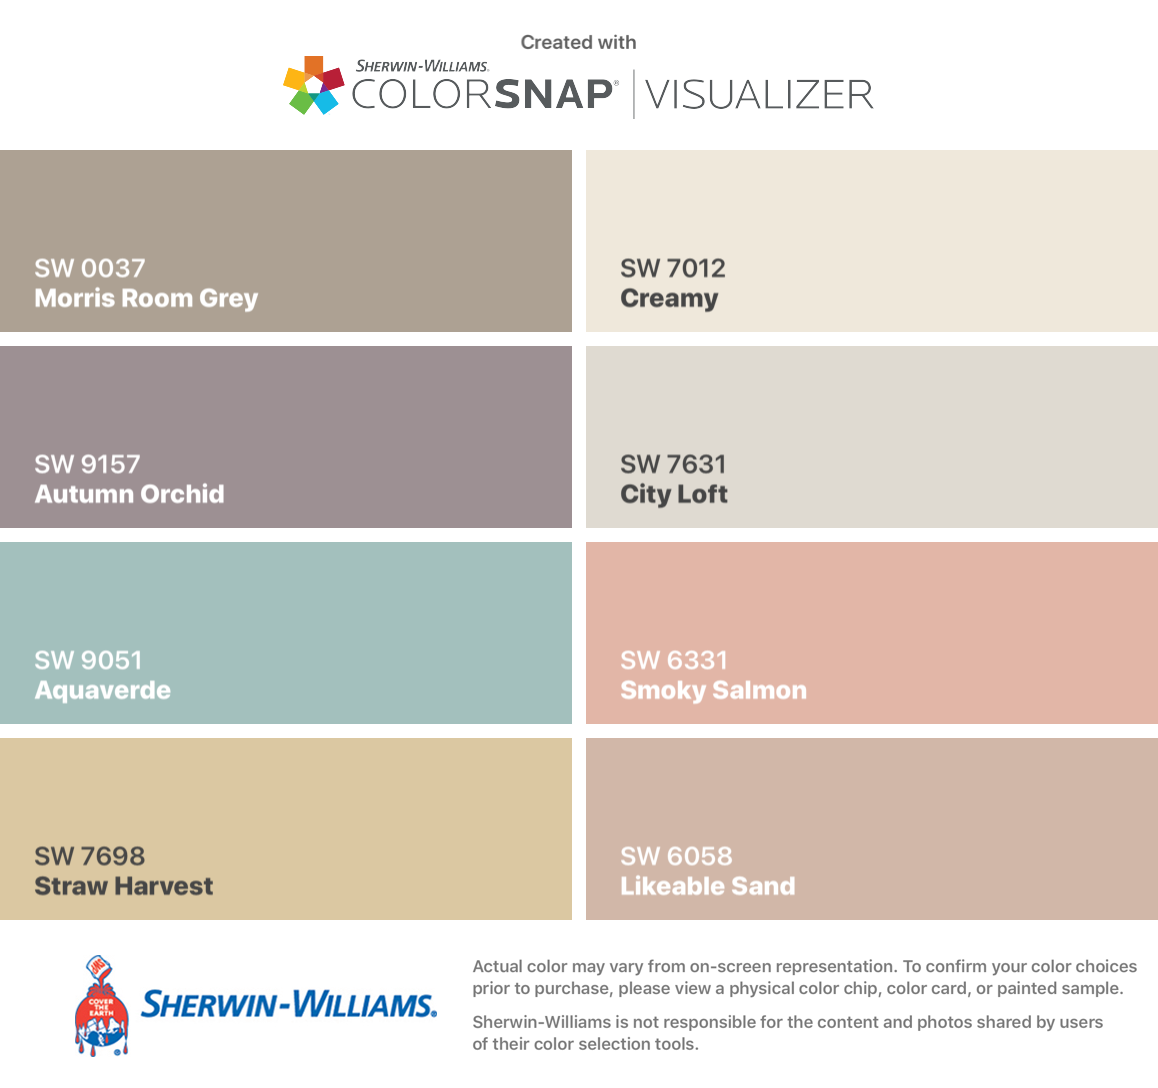 I found these colors with ColorSnap® Visualizer for iPhone by Sherwin-Williams: Morris Room Grey (SW 0037), Autumn Orchid (SW 9157), Aquaverde (SW 9051), Straw Harvest (SW 7698), Creamy (SW 7012), City Loft (SW 7631), Smoky Salmon (SW 6331), Likeable Sand (SW 6058). #cityloftsherwinwilliams I found these colors with ColorSnap® Visualizer for iPhone by Sherwin-Williams: Morris Room Grey (SW 0037), Autumn Orchid (SW 9157), Aquaverde (SW 9051), Straw Harvest (SW 7698), Creamy (SW 7012), City Loft #cityloftsherwinwilliams